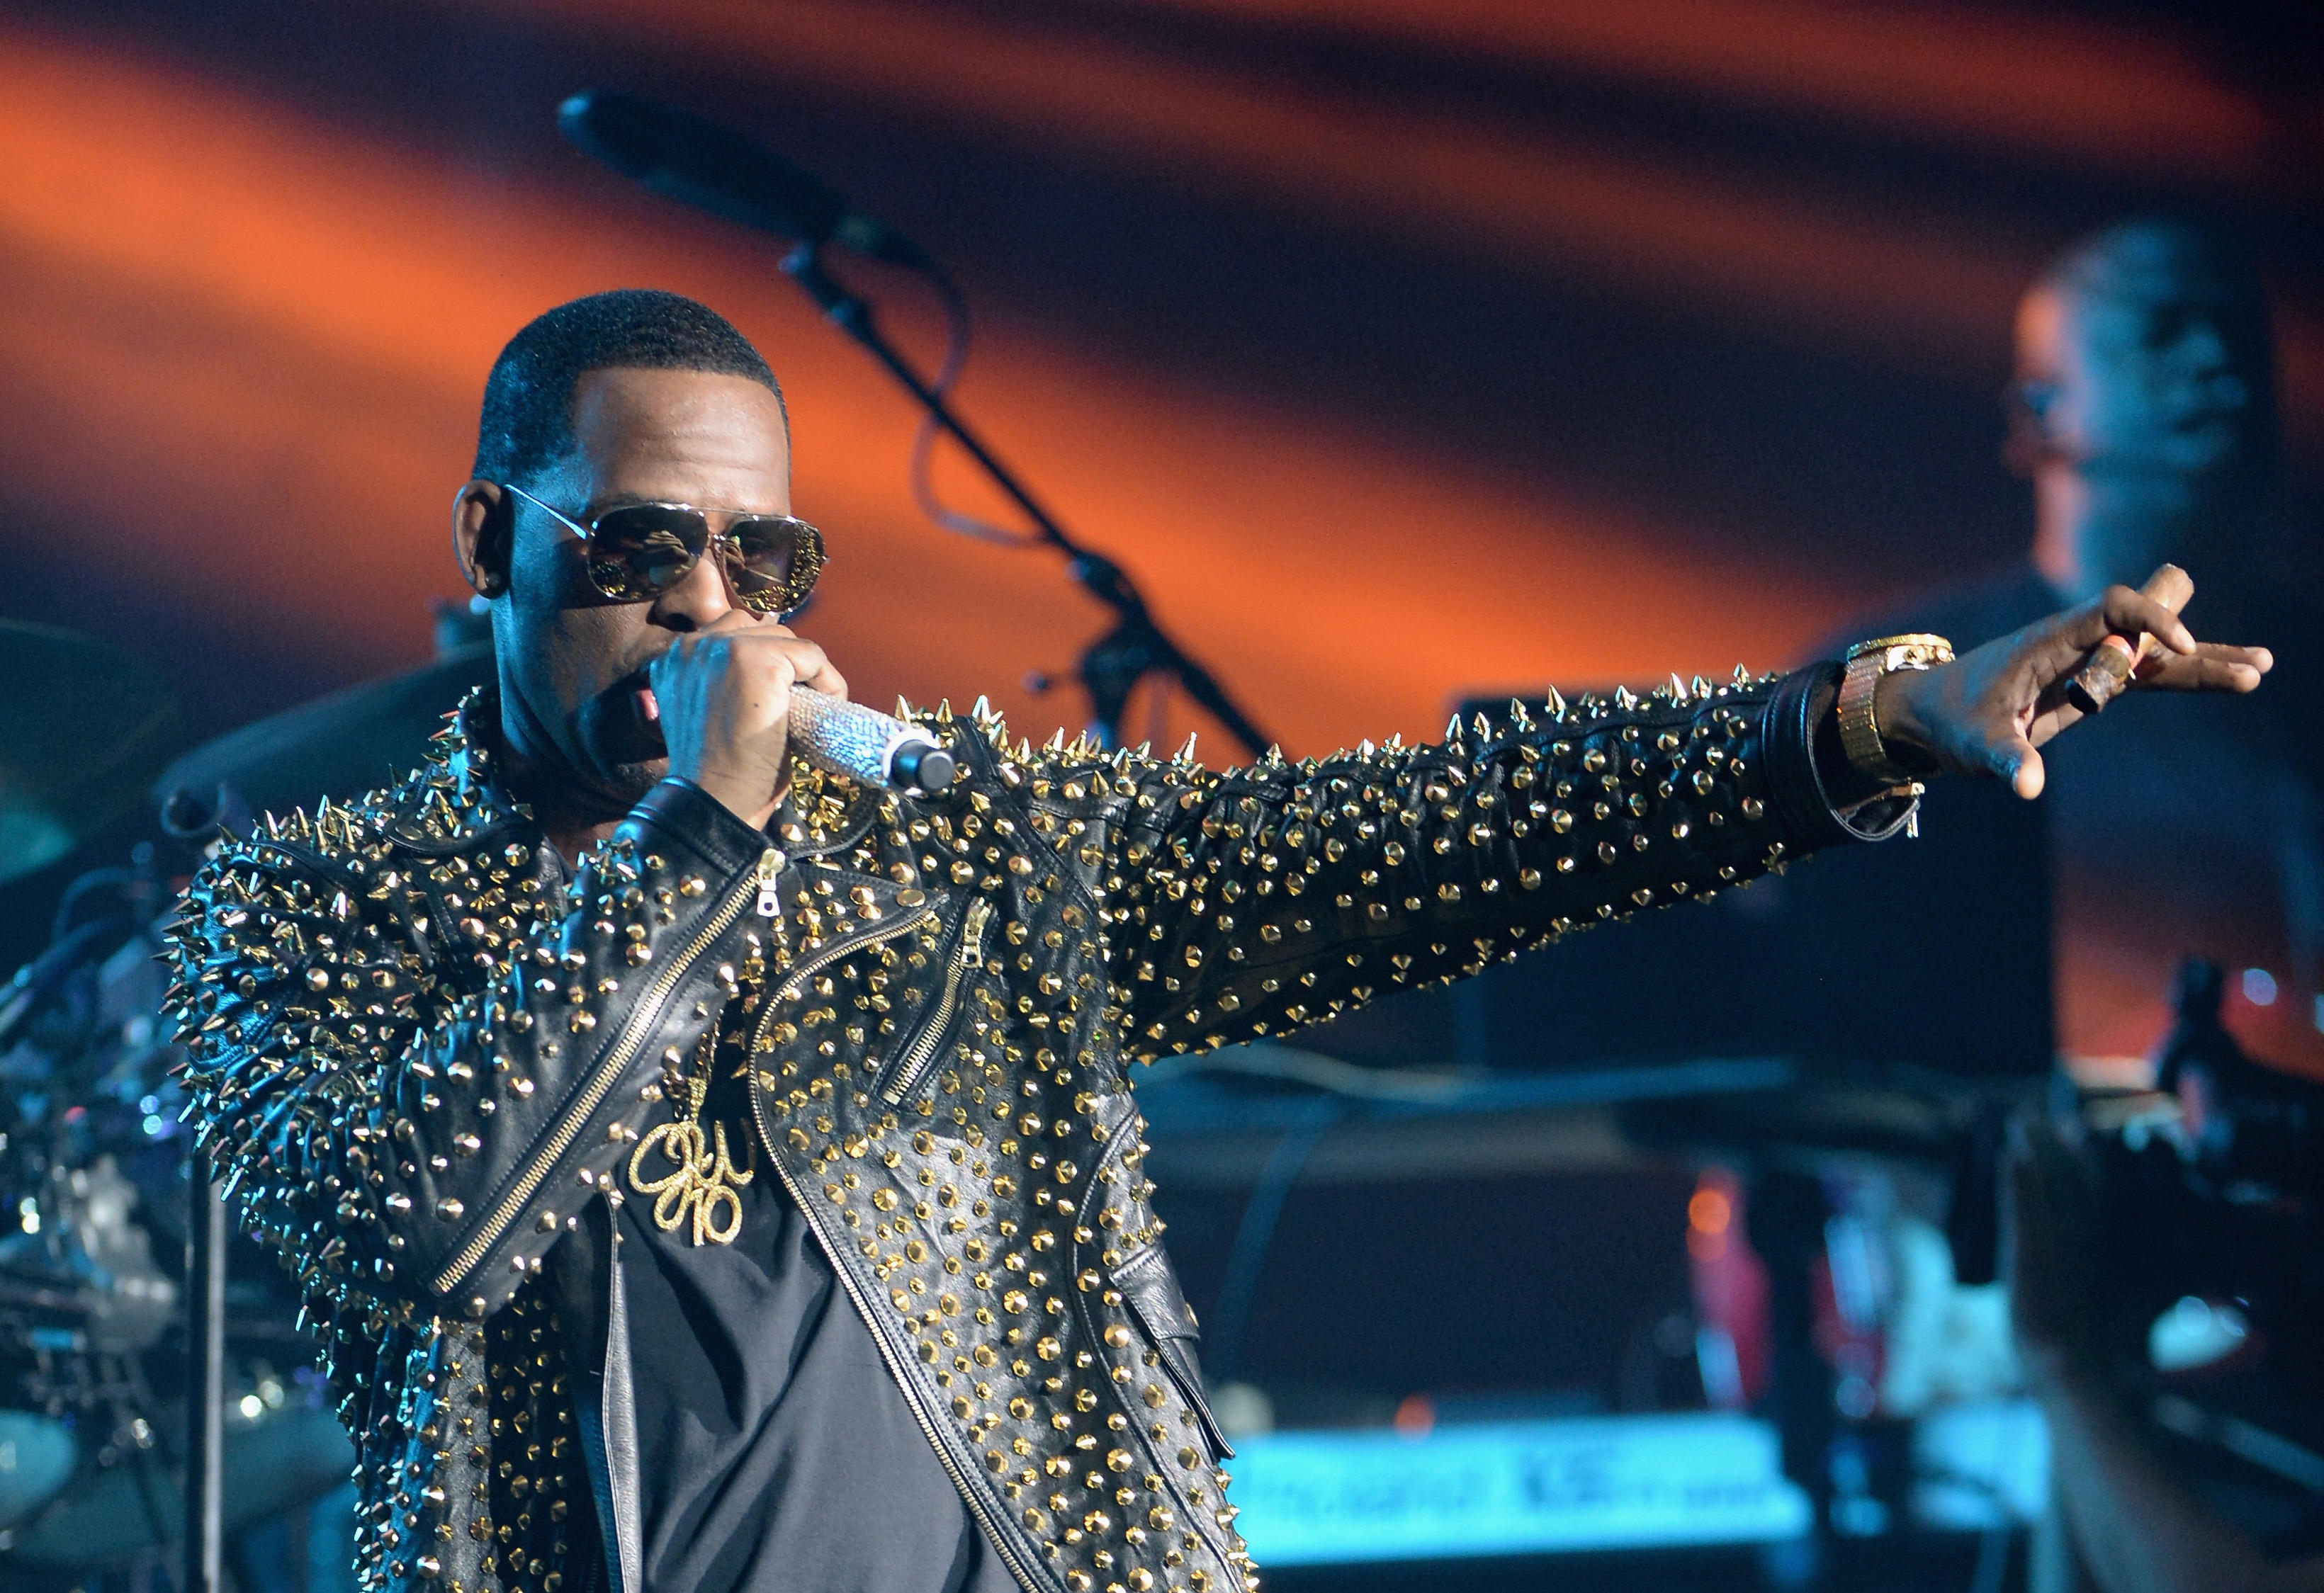 R. Kelly sings into a microphone in a studded leather jacket